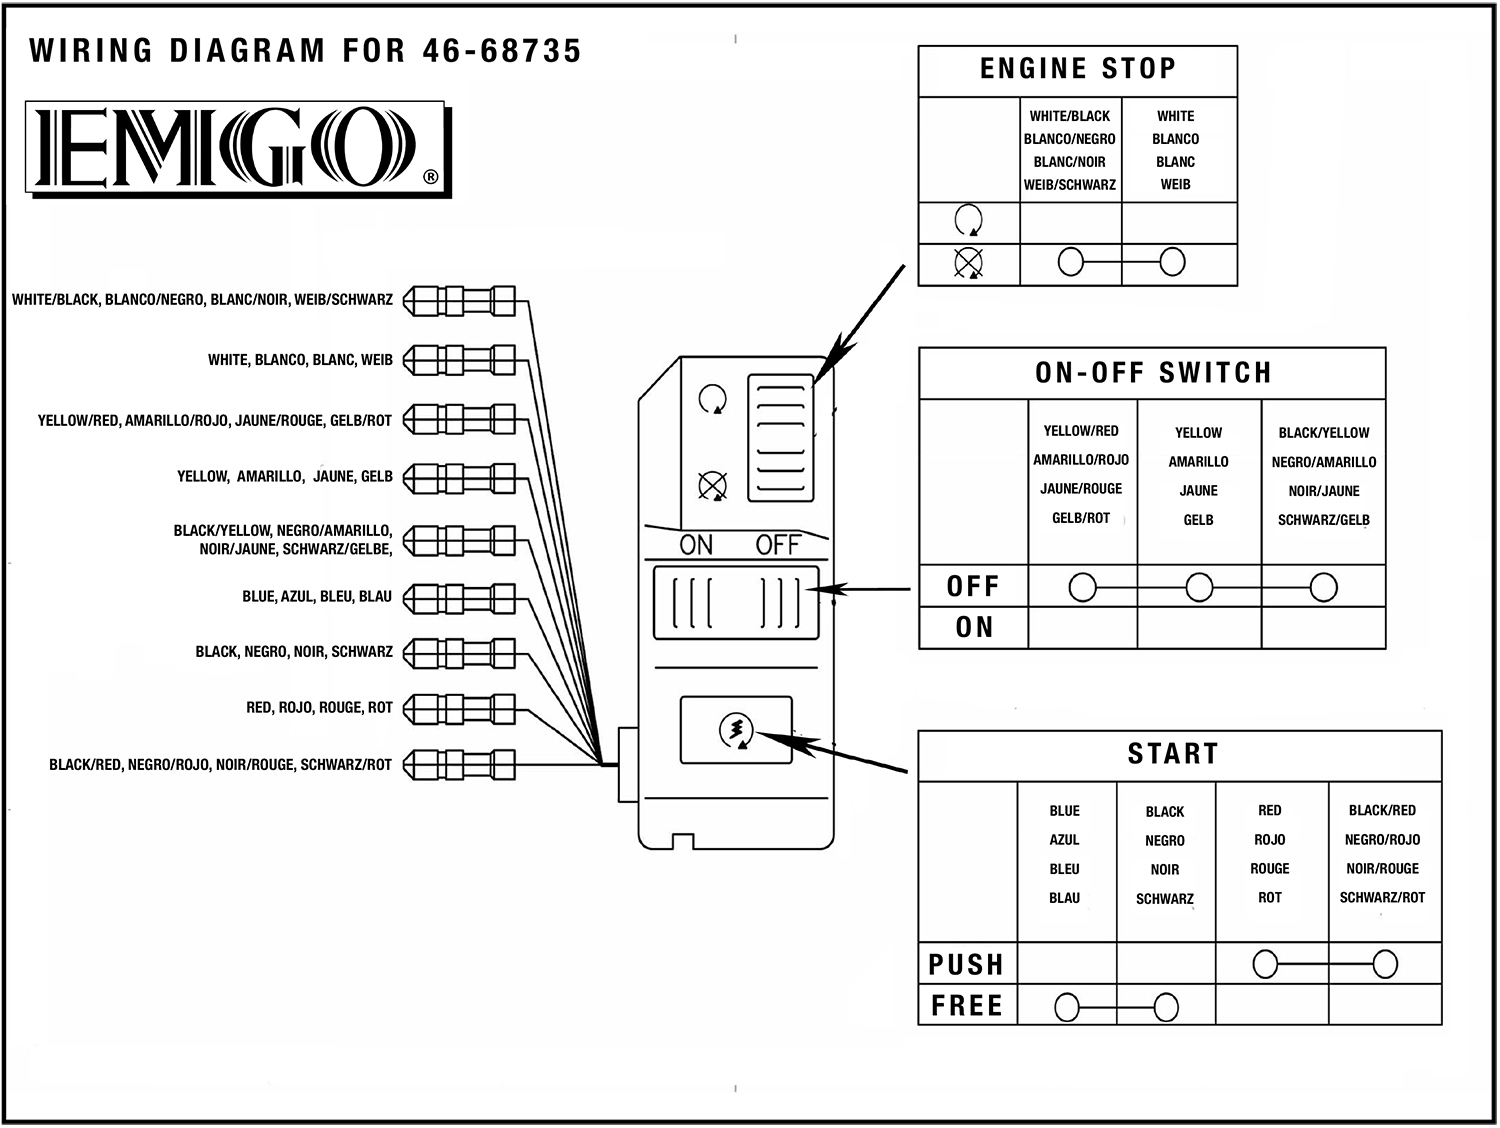 small resolution of xr600 wiring diagram wiring diagramhonda xr600 wiring diagram wiring libraryemgo universal handlebar multi switch right 46